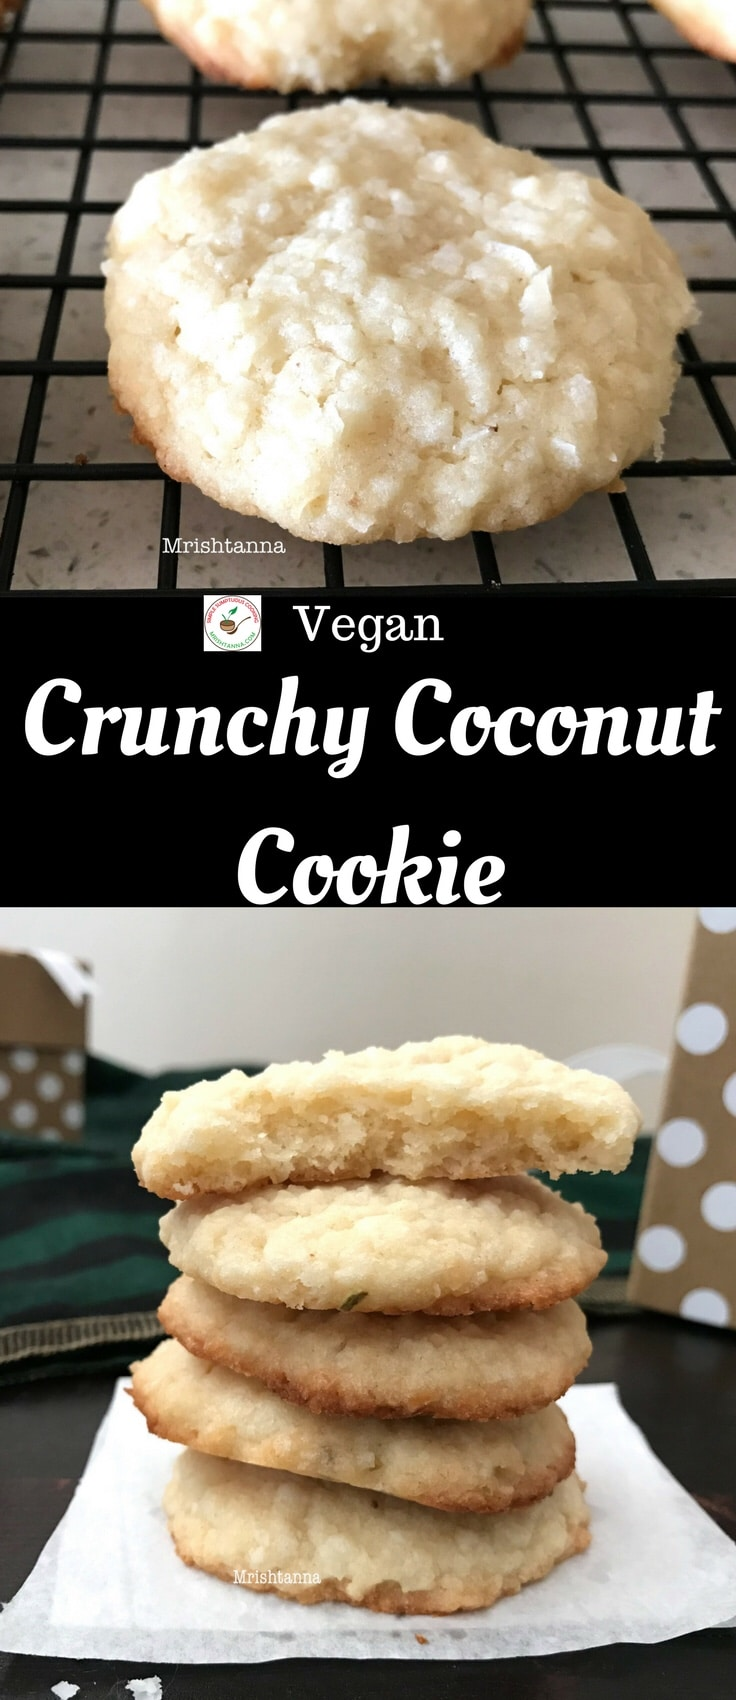 Crunchy Coconut Cookie Recipe